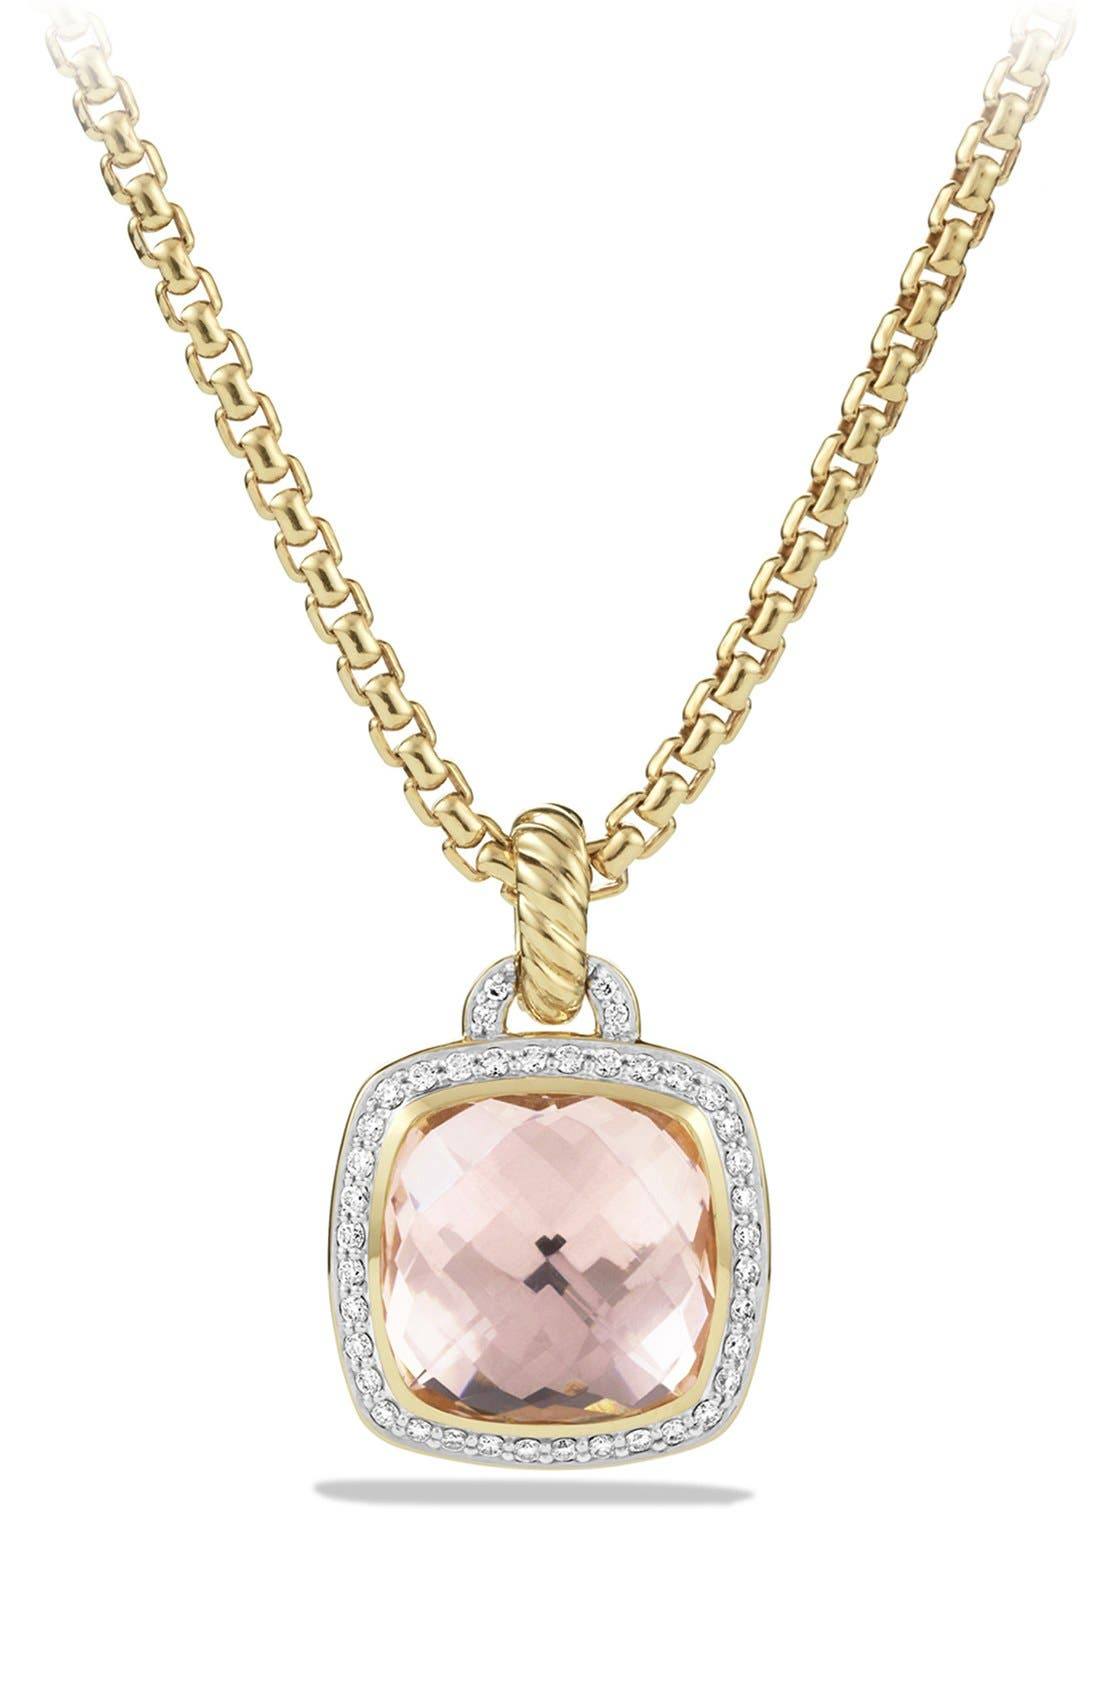 'Albion' Pendant with Lemon Citrine and Diamonds in 18k Gold,                         Main,                         color, Morganite